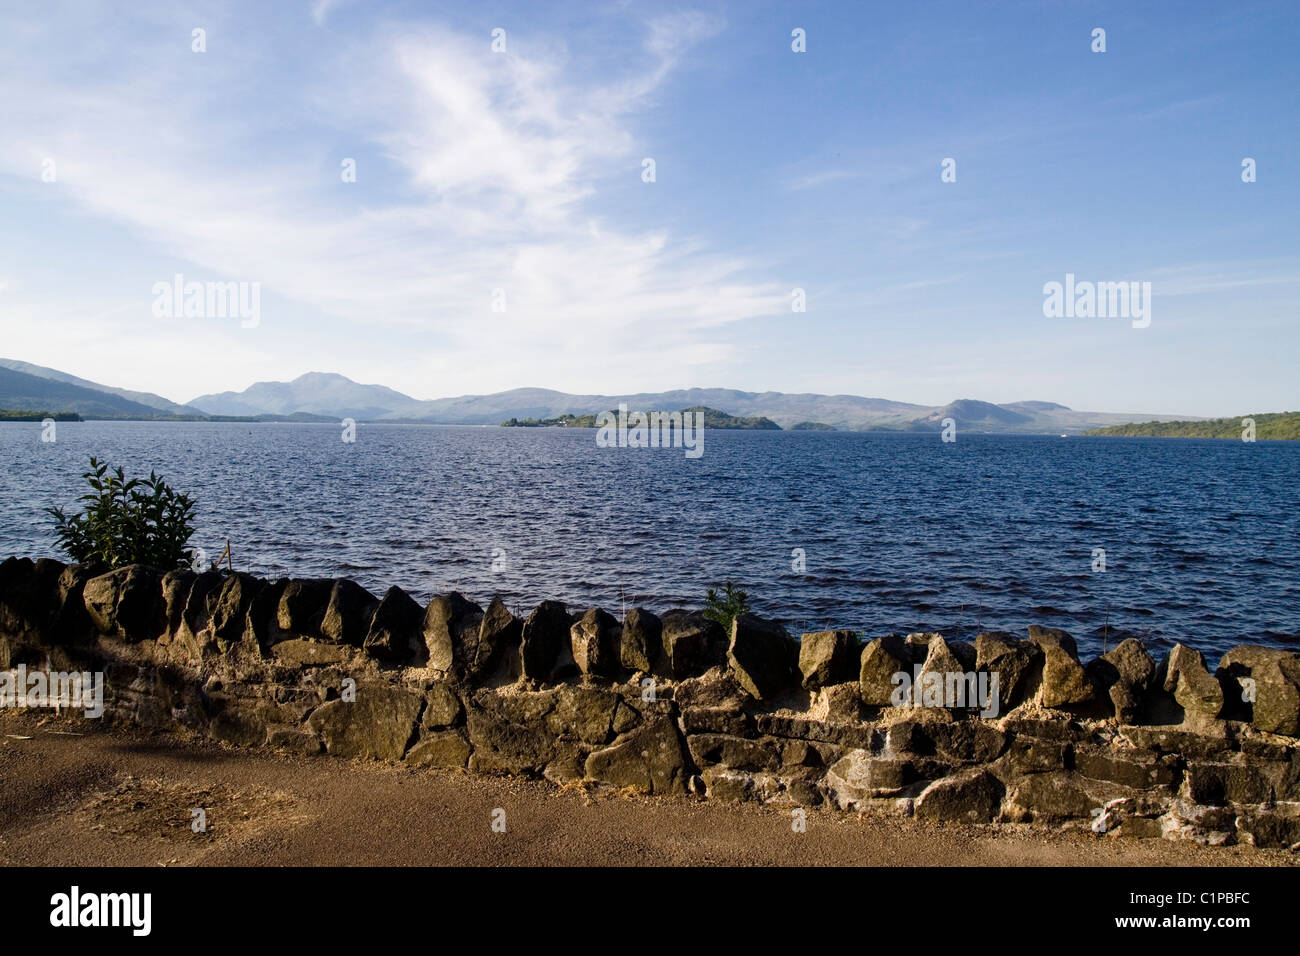 L'Ecosse, Loch Lomond, mur au bord de l'eau Photo Stock